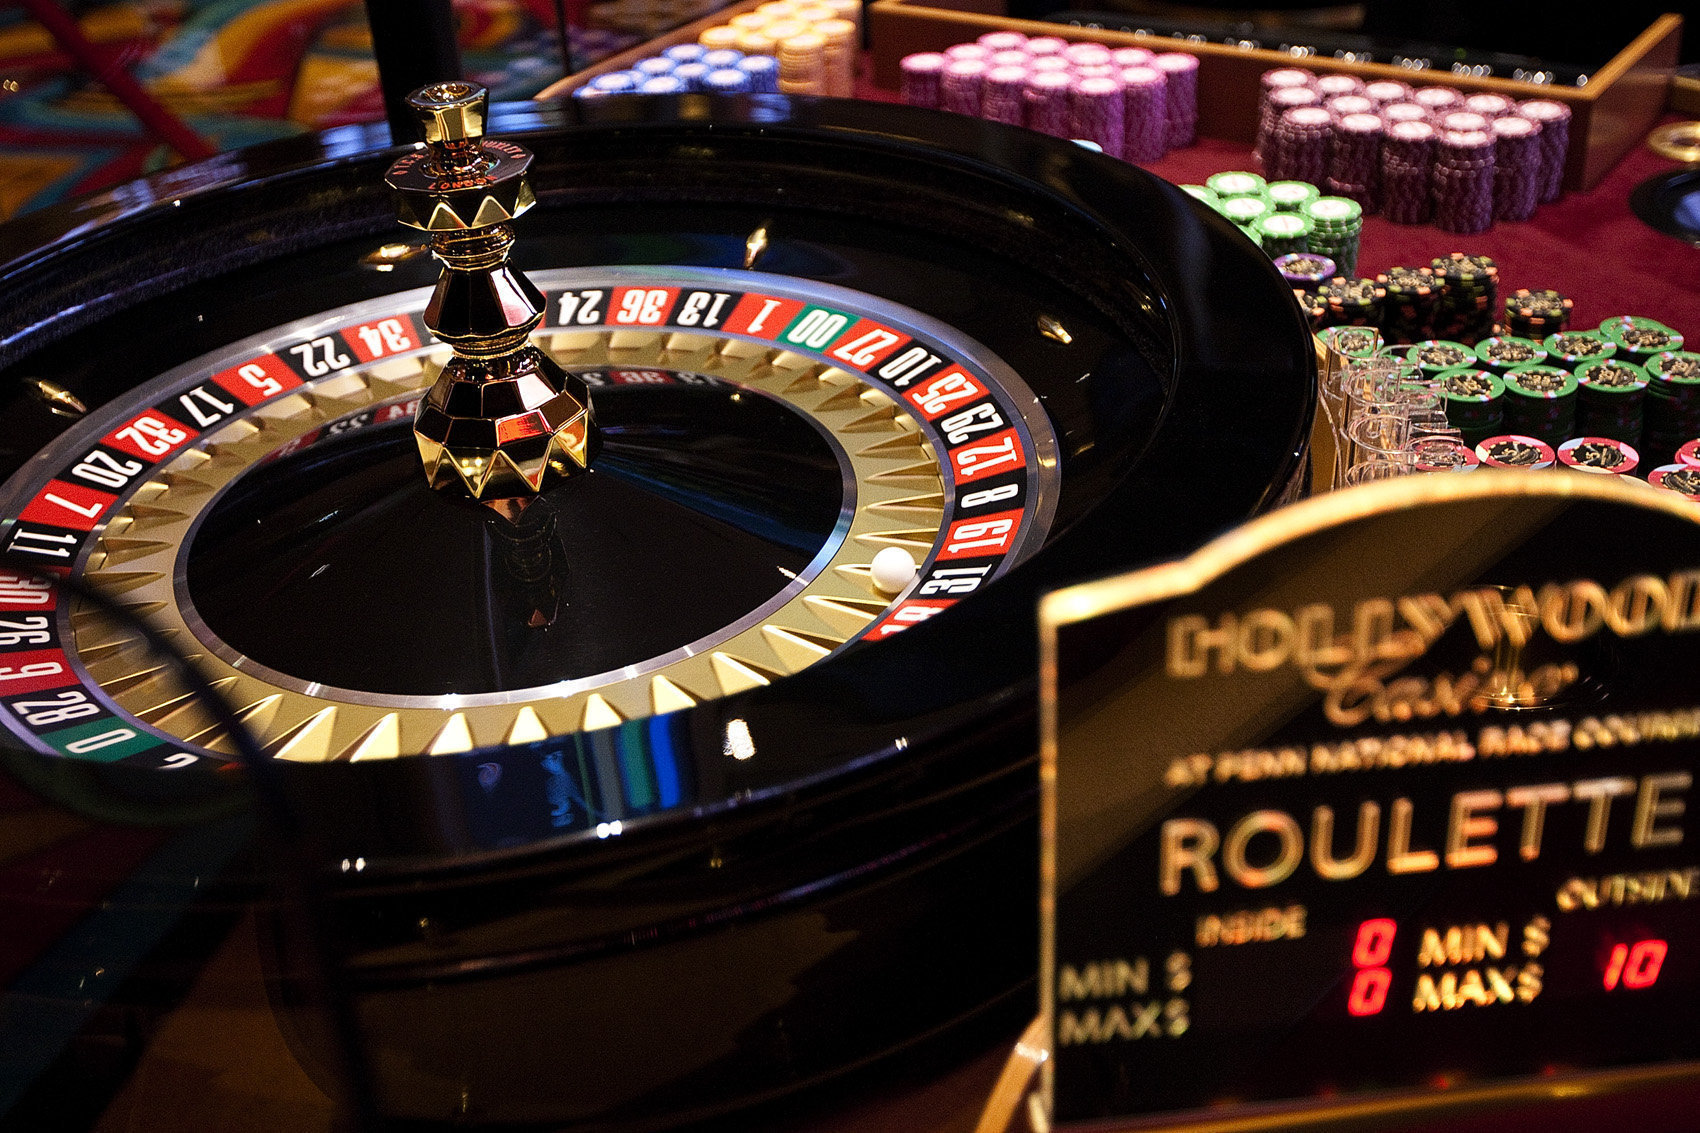 Roulette online no limit free